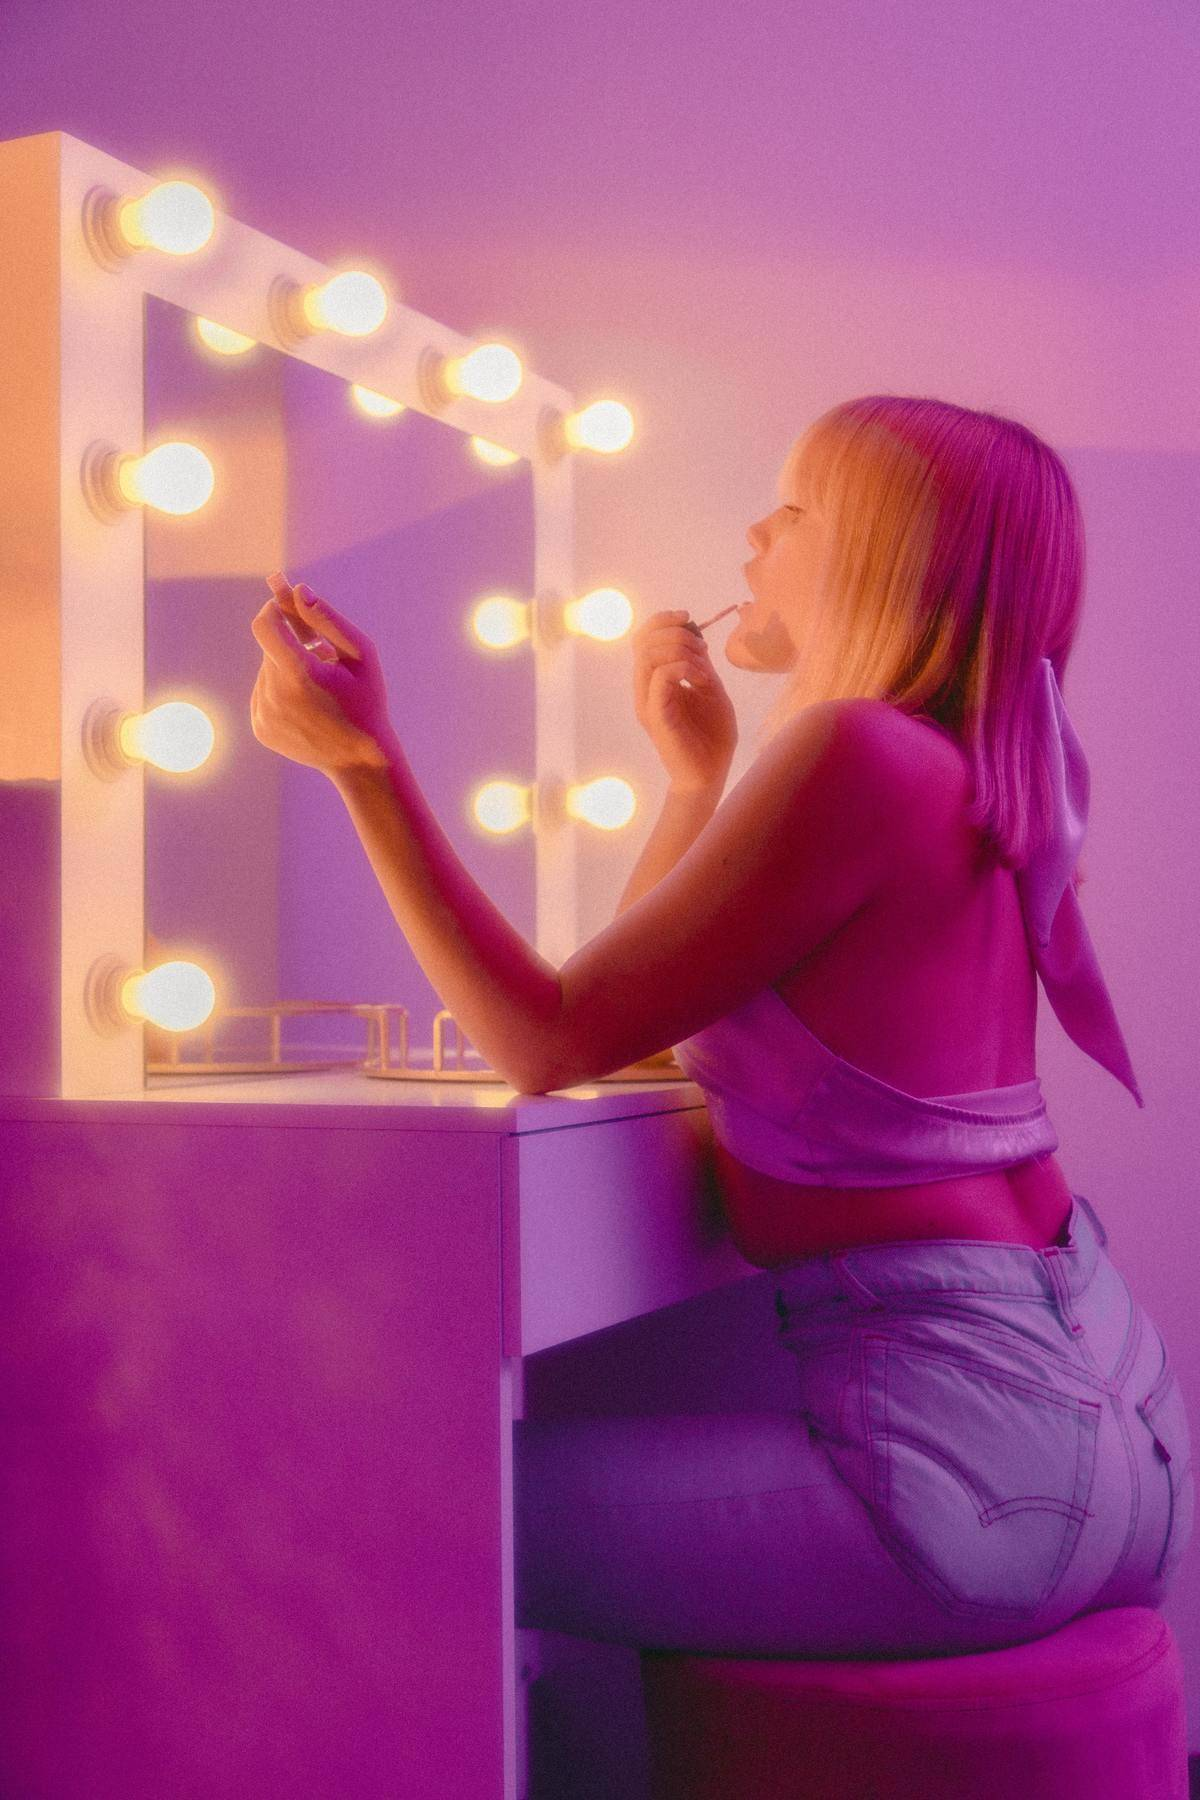 woman putting makeup on in dresser mirror